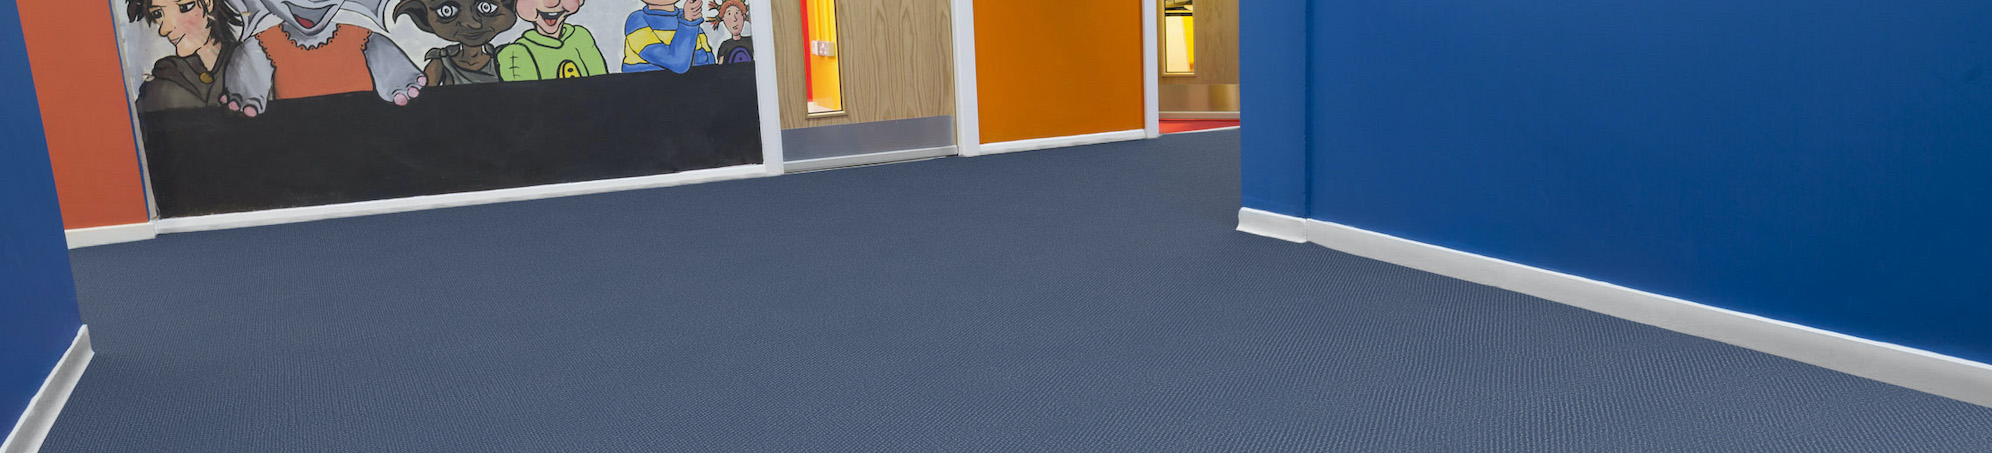 Heckmondwike | Montage Relaunch | Midnight Blue | Commercial Carpet | Banner Image